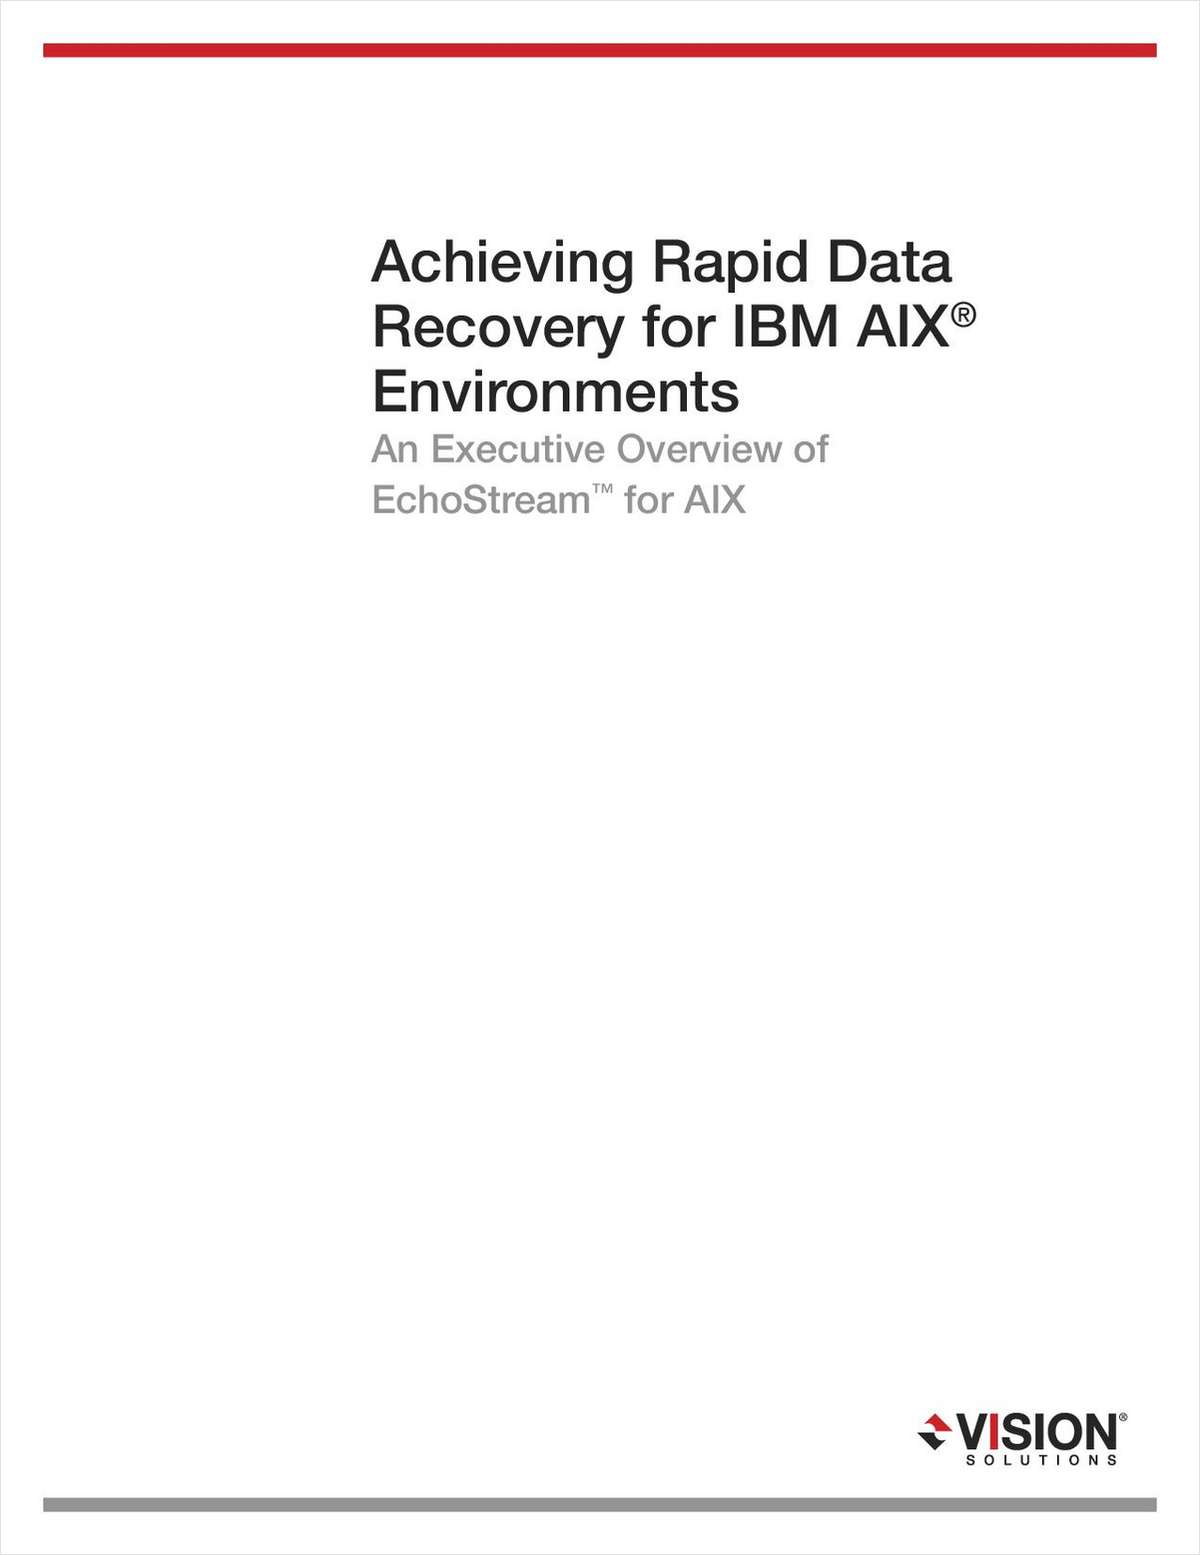 Achieving Rapid Data Recovery for IBM AIX Environments